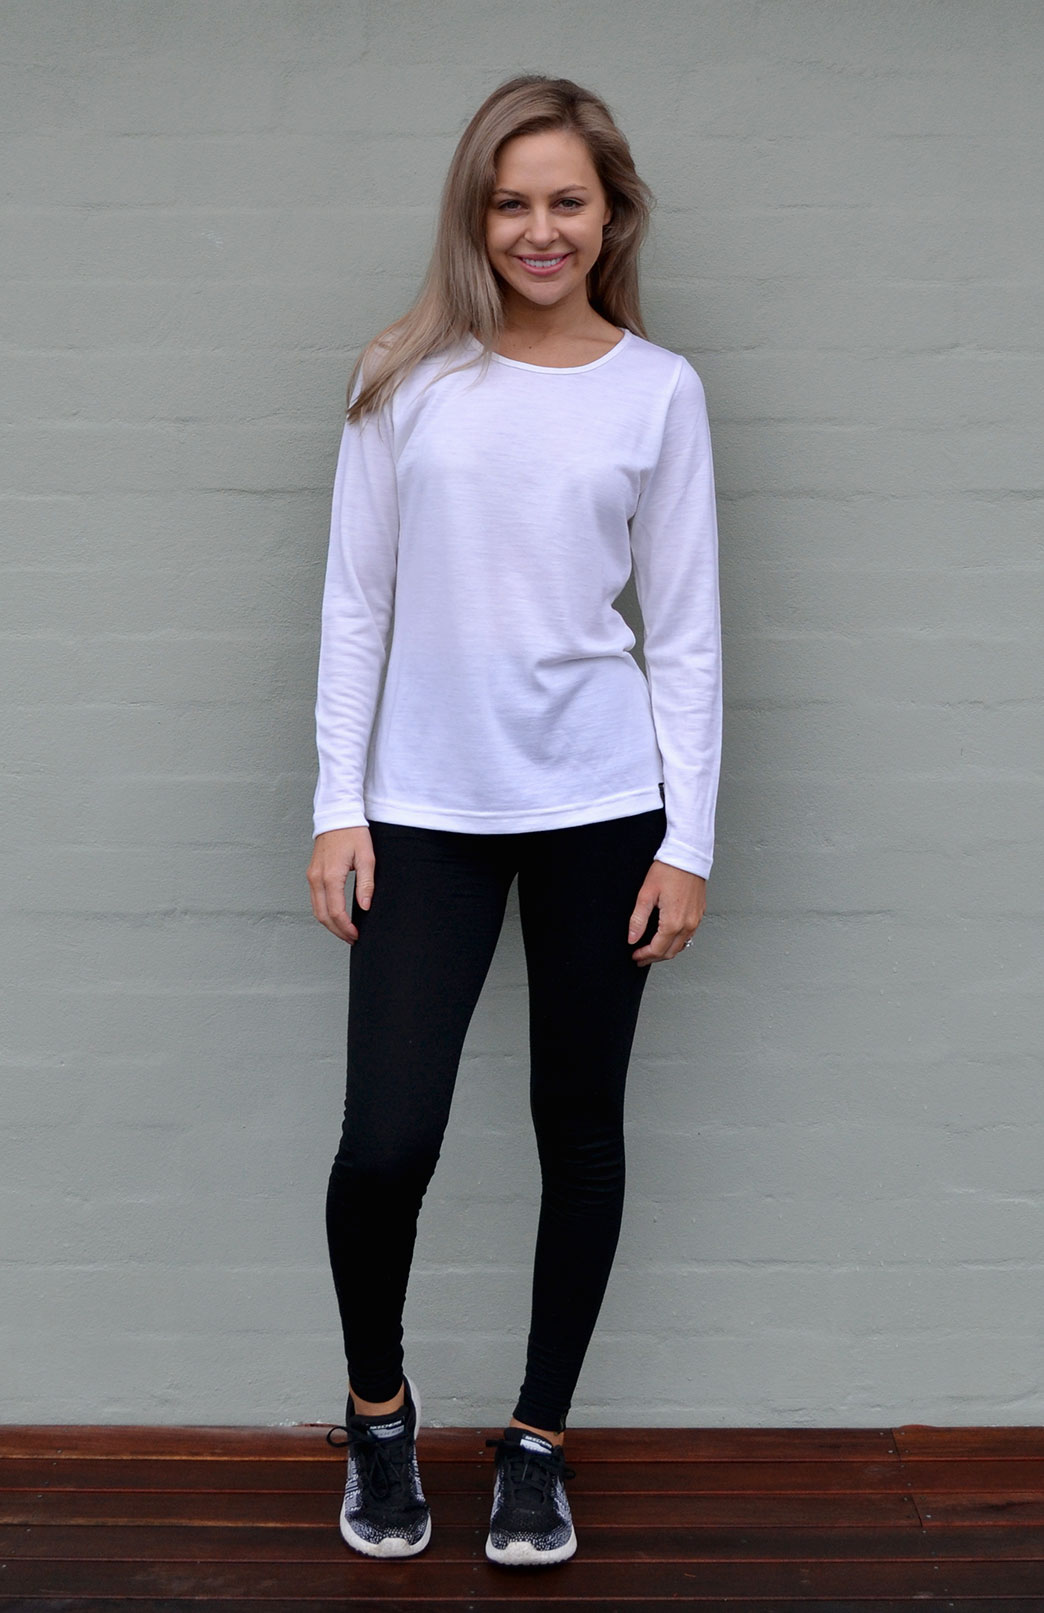 Round Neck Top - Active - Women's Plain Colour Outdoor and Activewear Round Neck Thermal Top - Smitten Merino Tasmania Australia